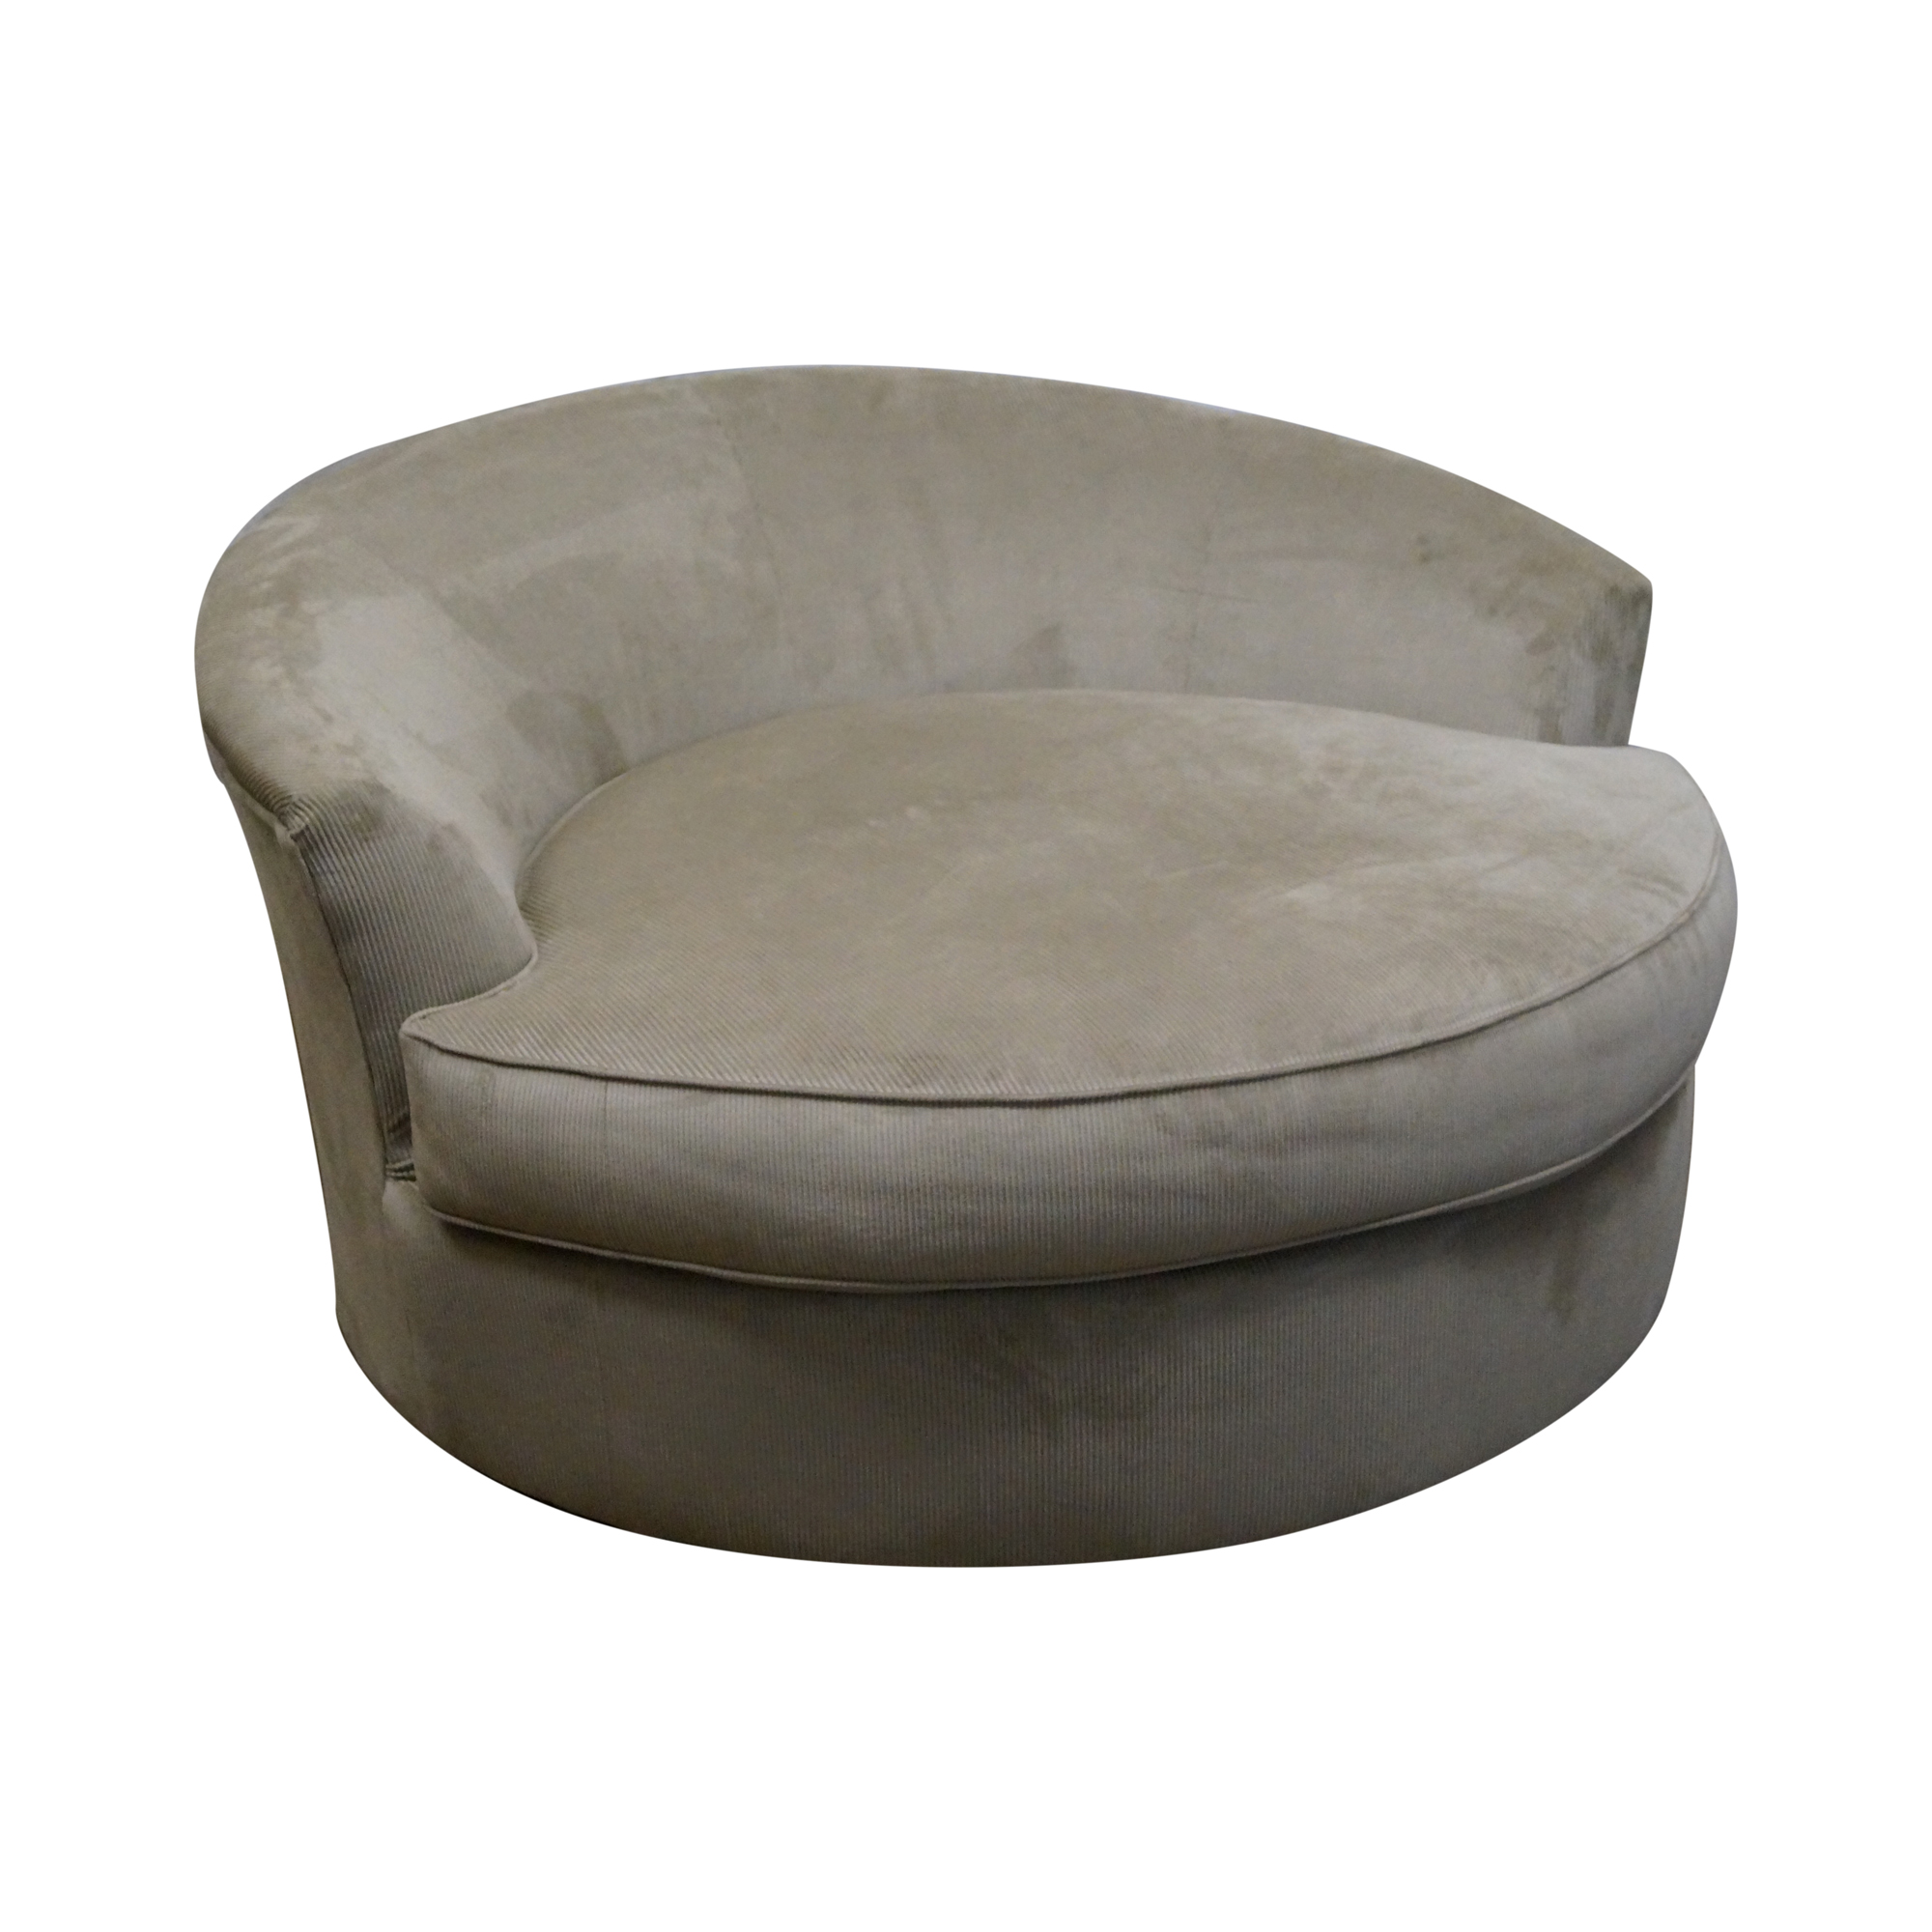 Round Bedroom Chair Black Grey Cuddle Chair Sofa Round Arm Chair Swivel In Home